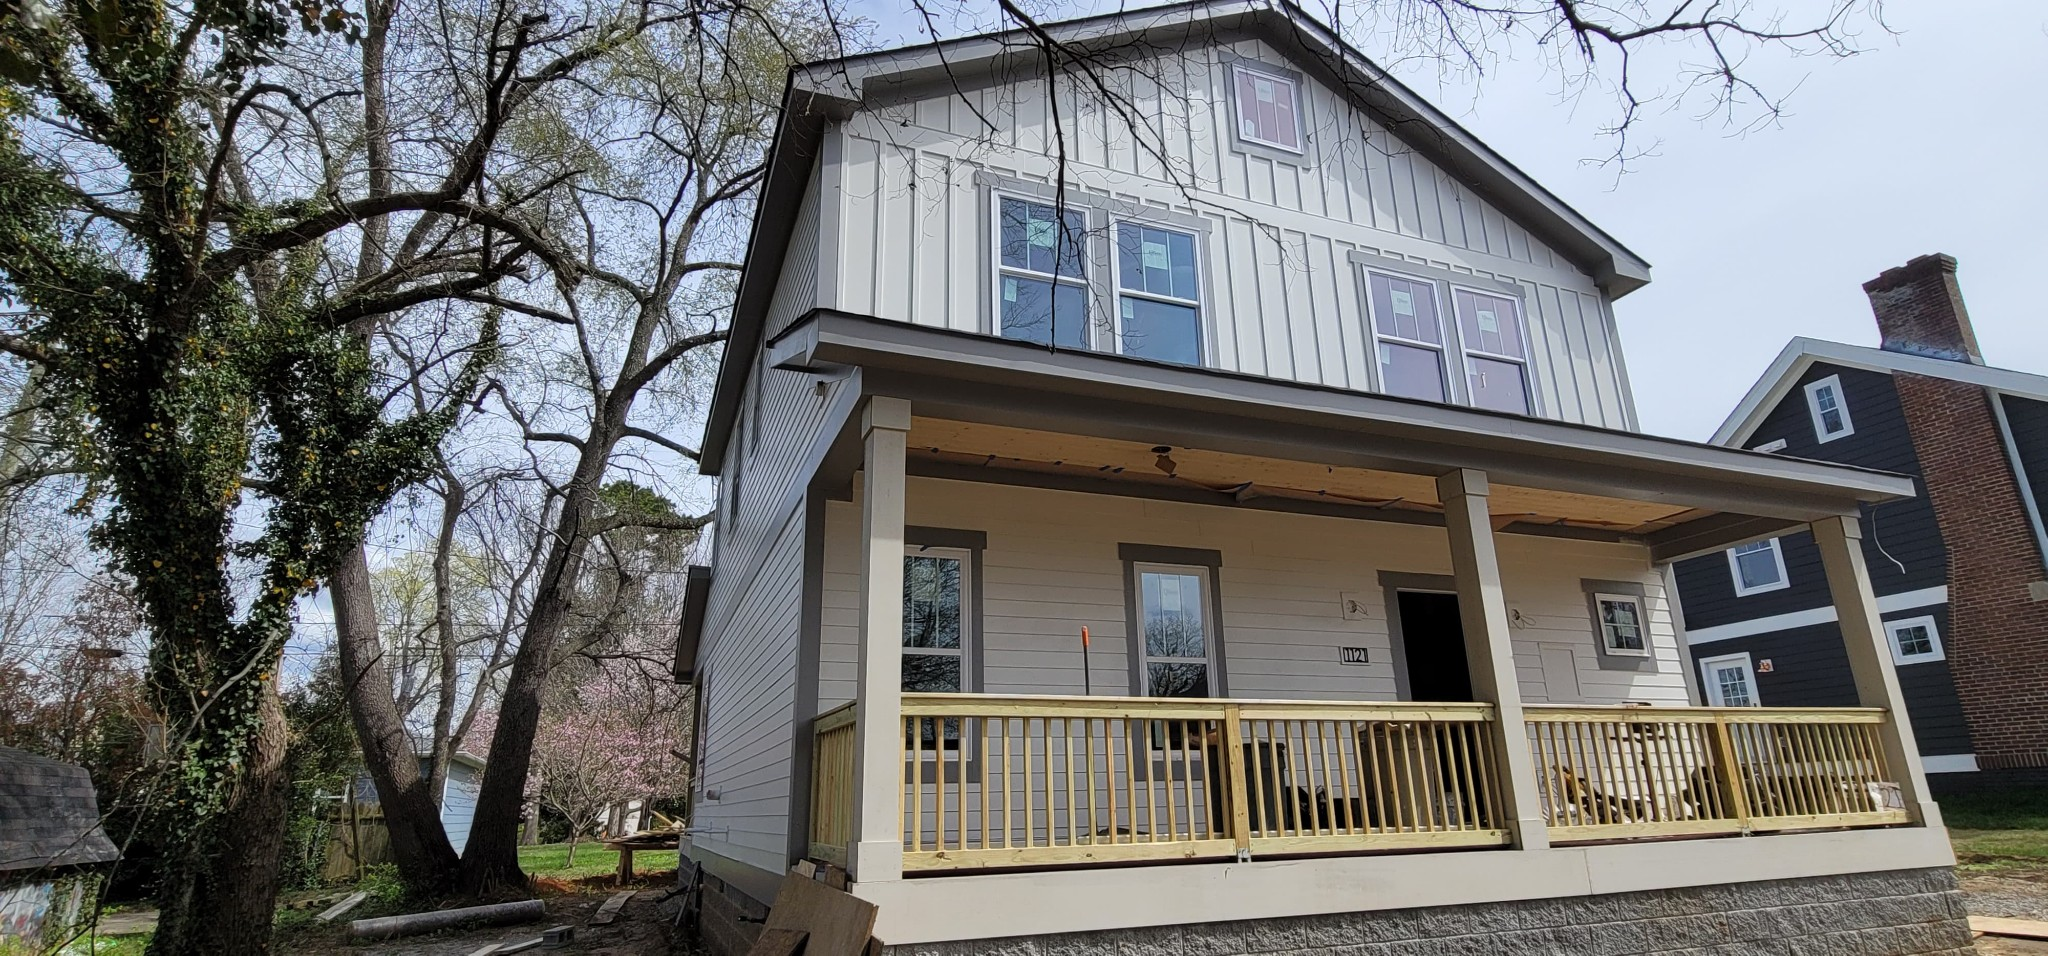 1121 Birdsall St Property Photo - Old Hickory, TN real estate listing